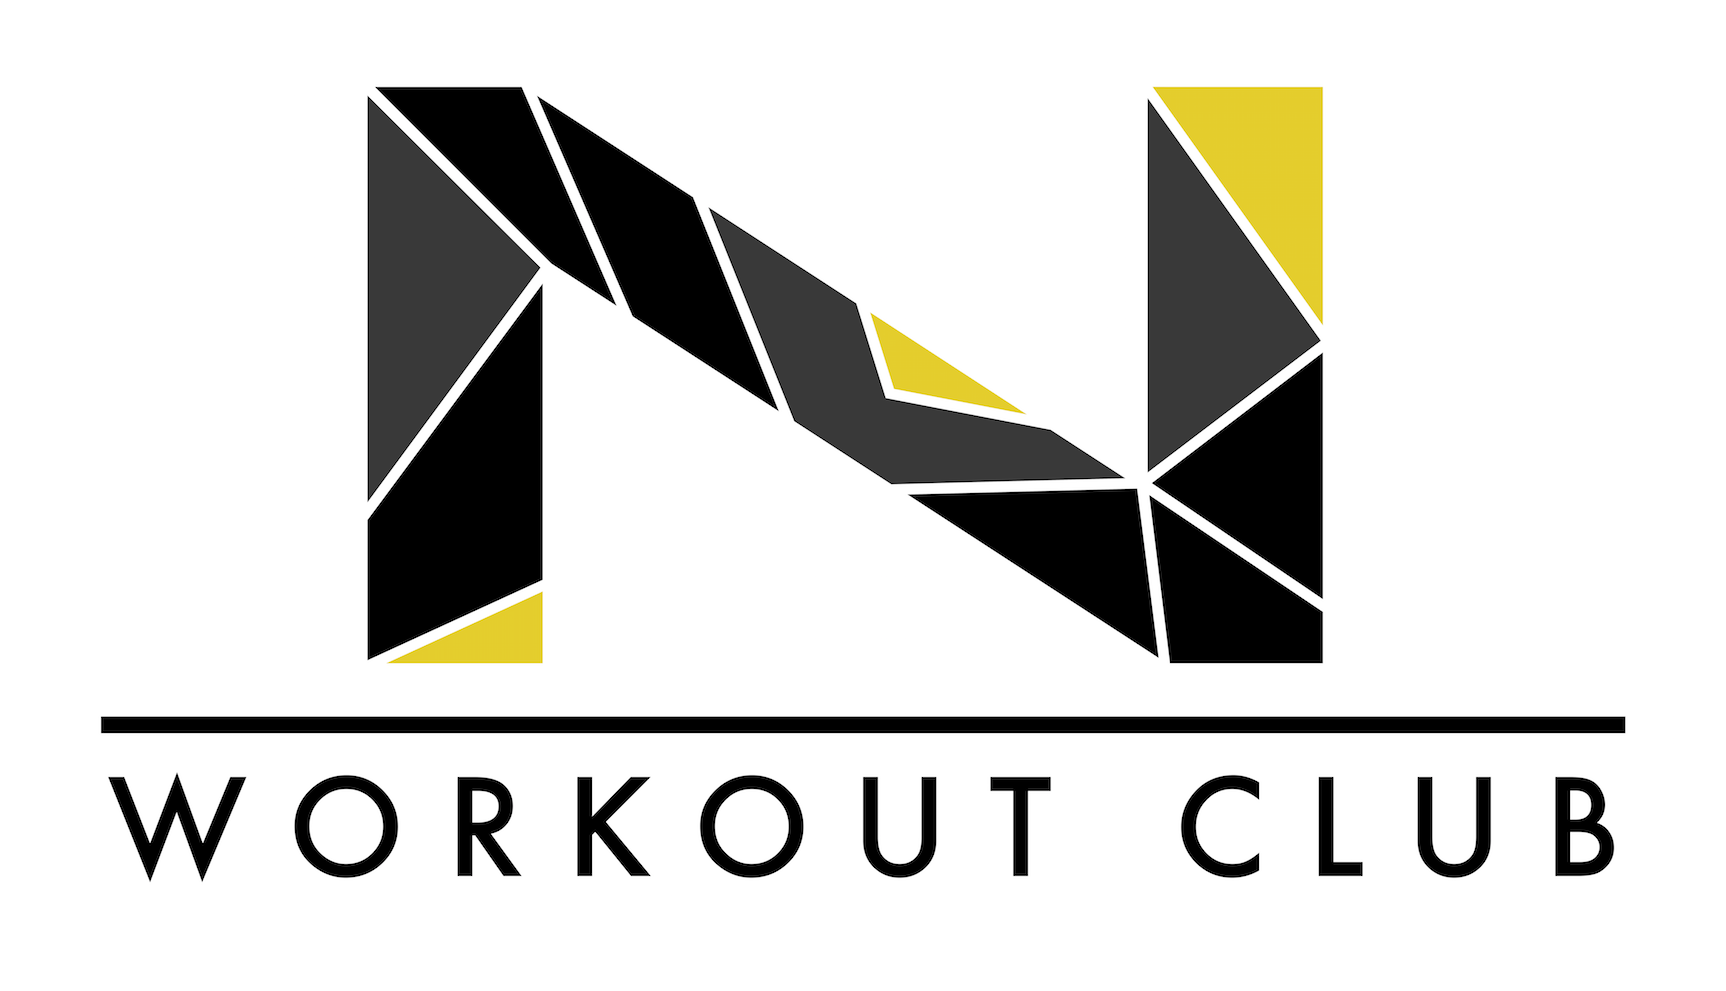 Workout Club